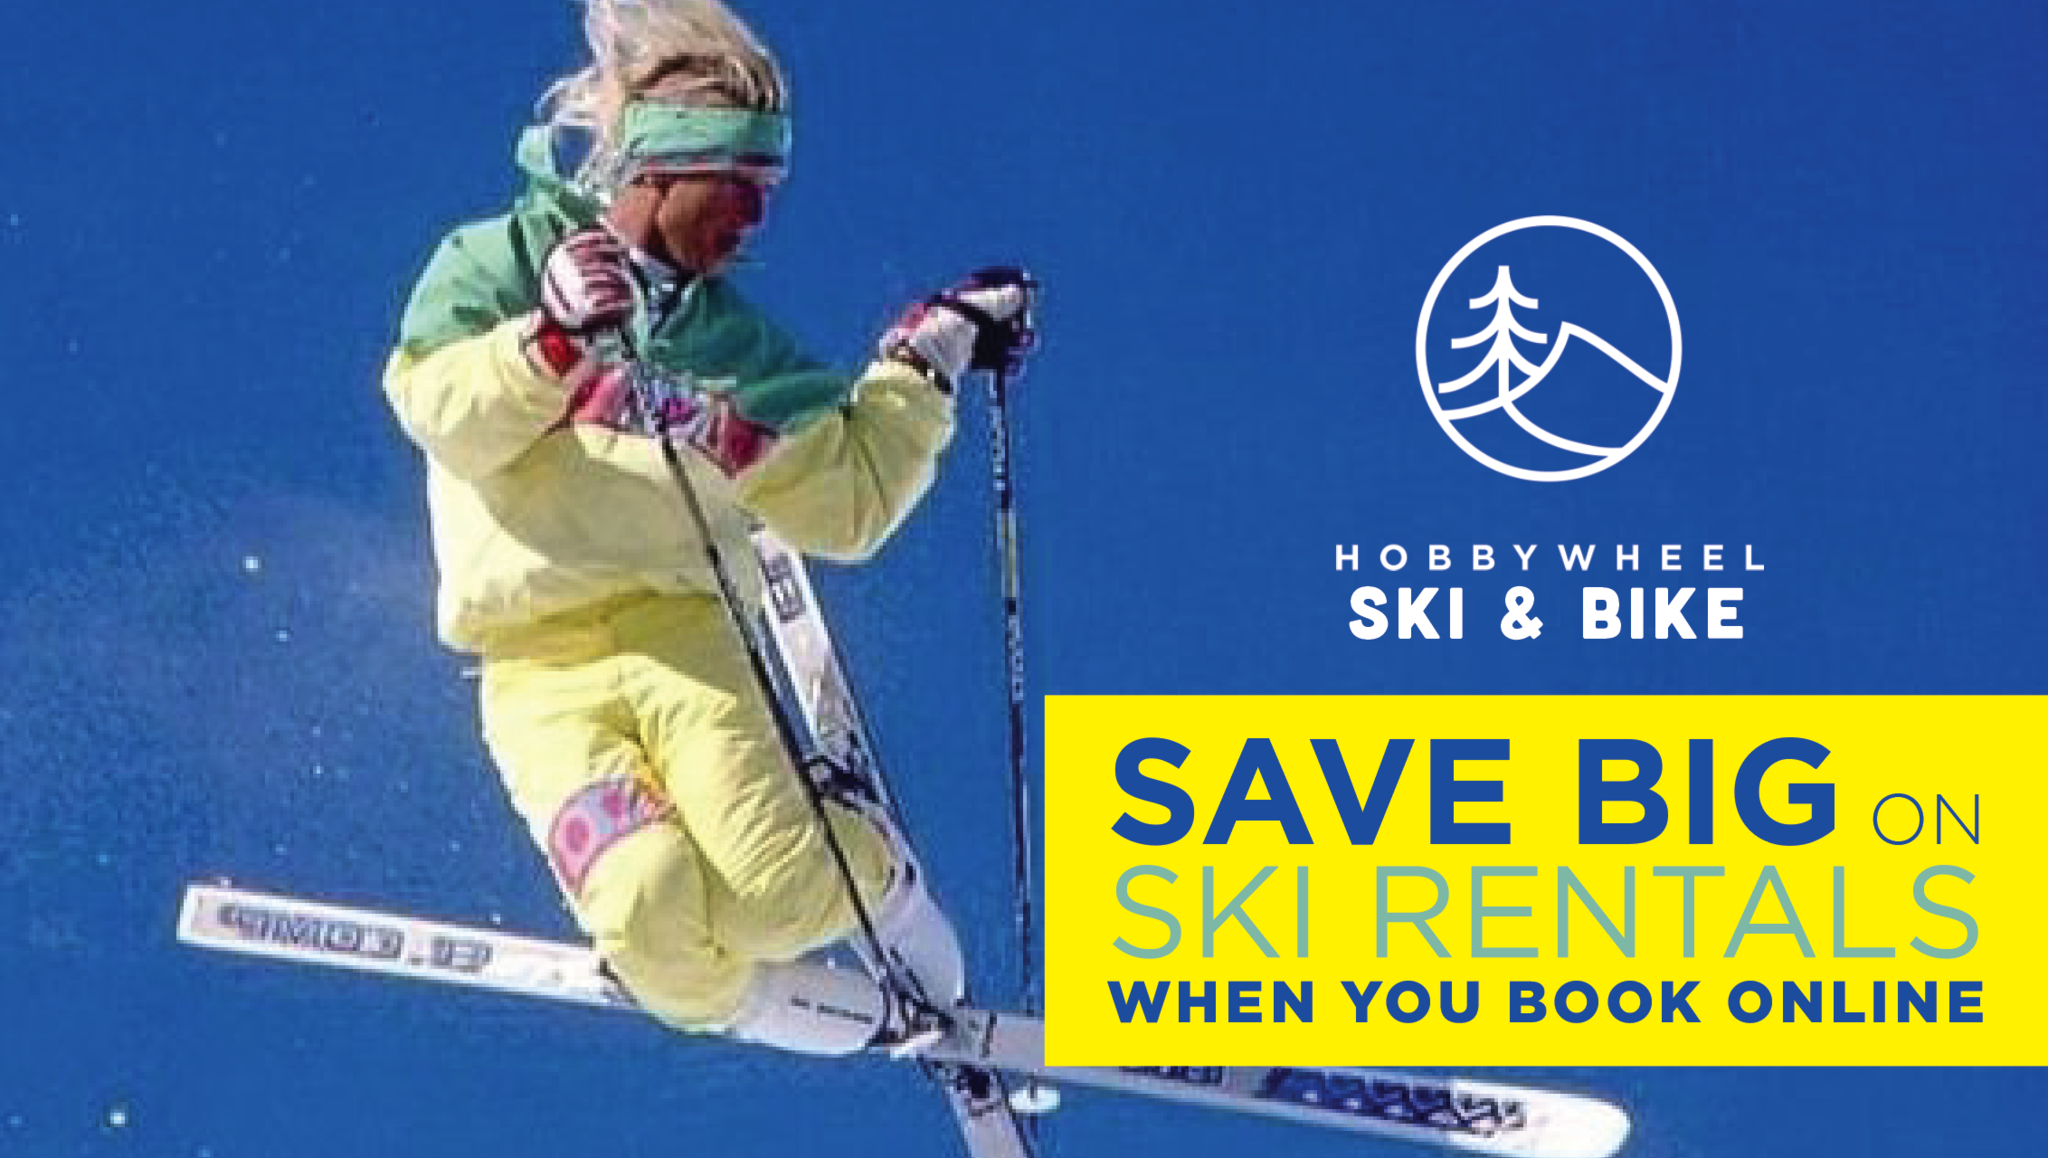 Save big on ski rentals!